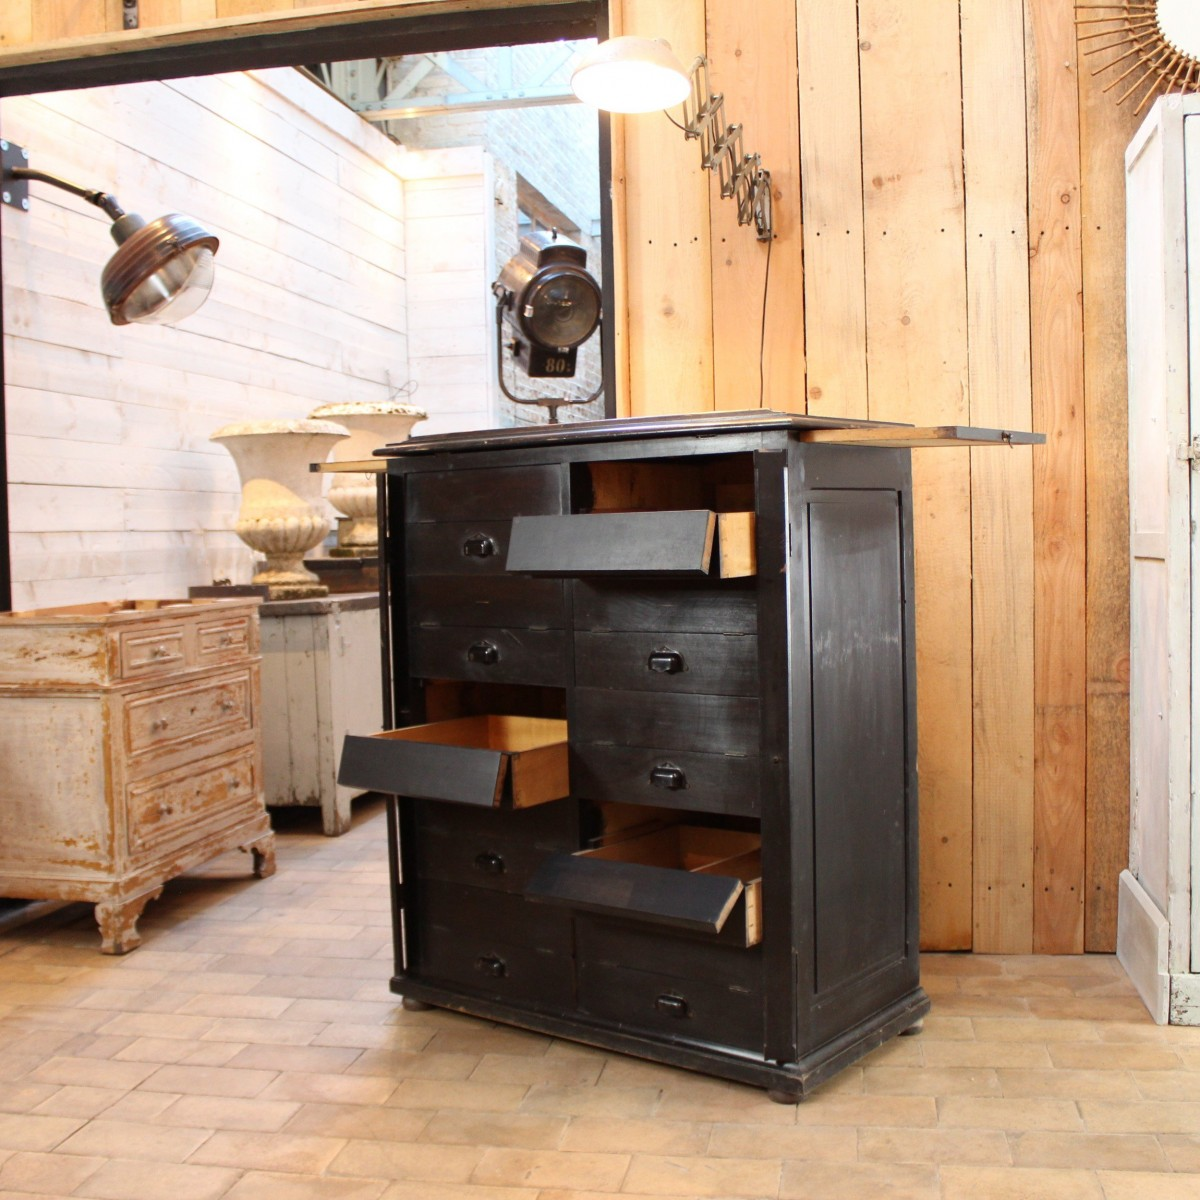 Wooden notary furniture